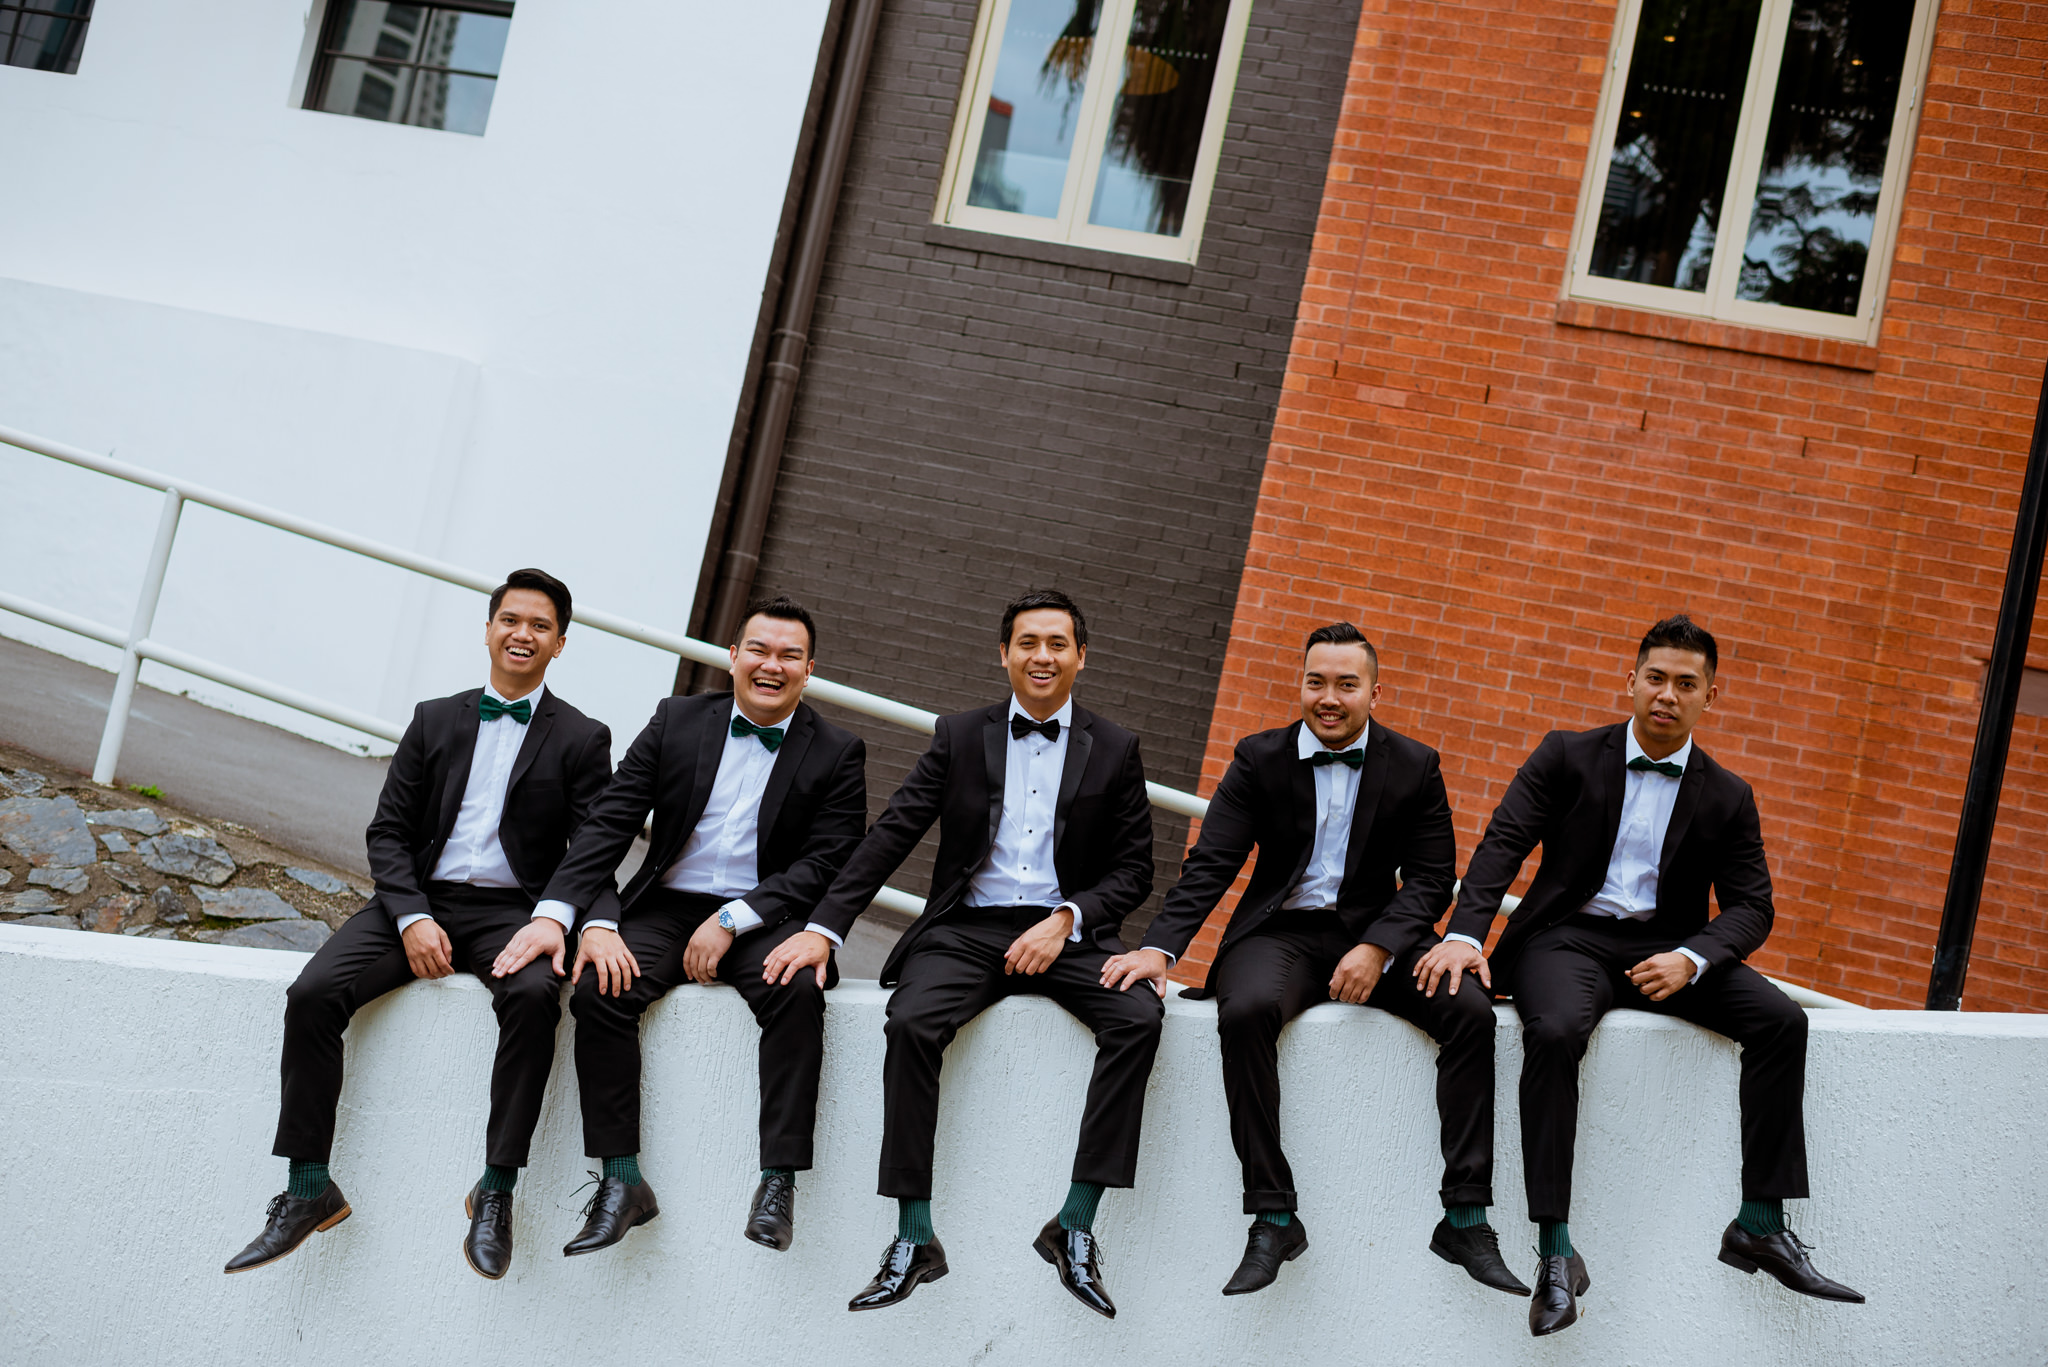 Groom and groomsmen sitting on slanted wall, touching each other's knees